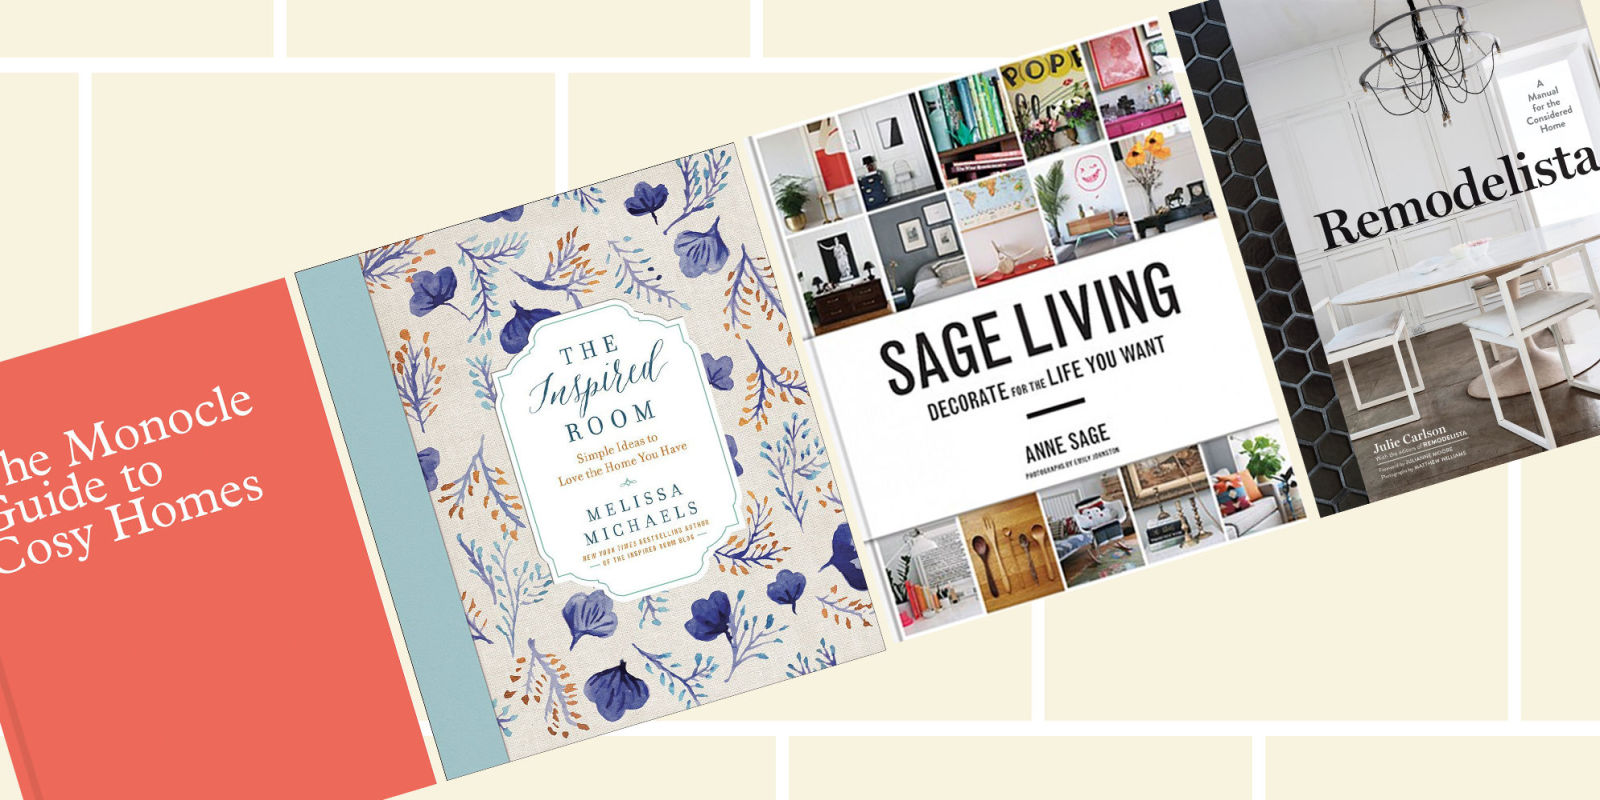 12 best interior design books of 2017 top books for home decor ideas - Books On Home Design